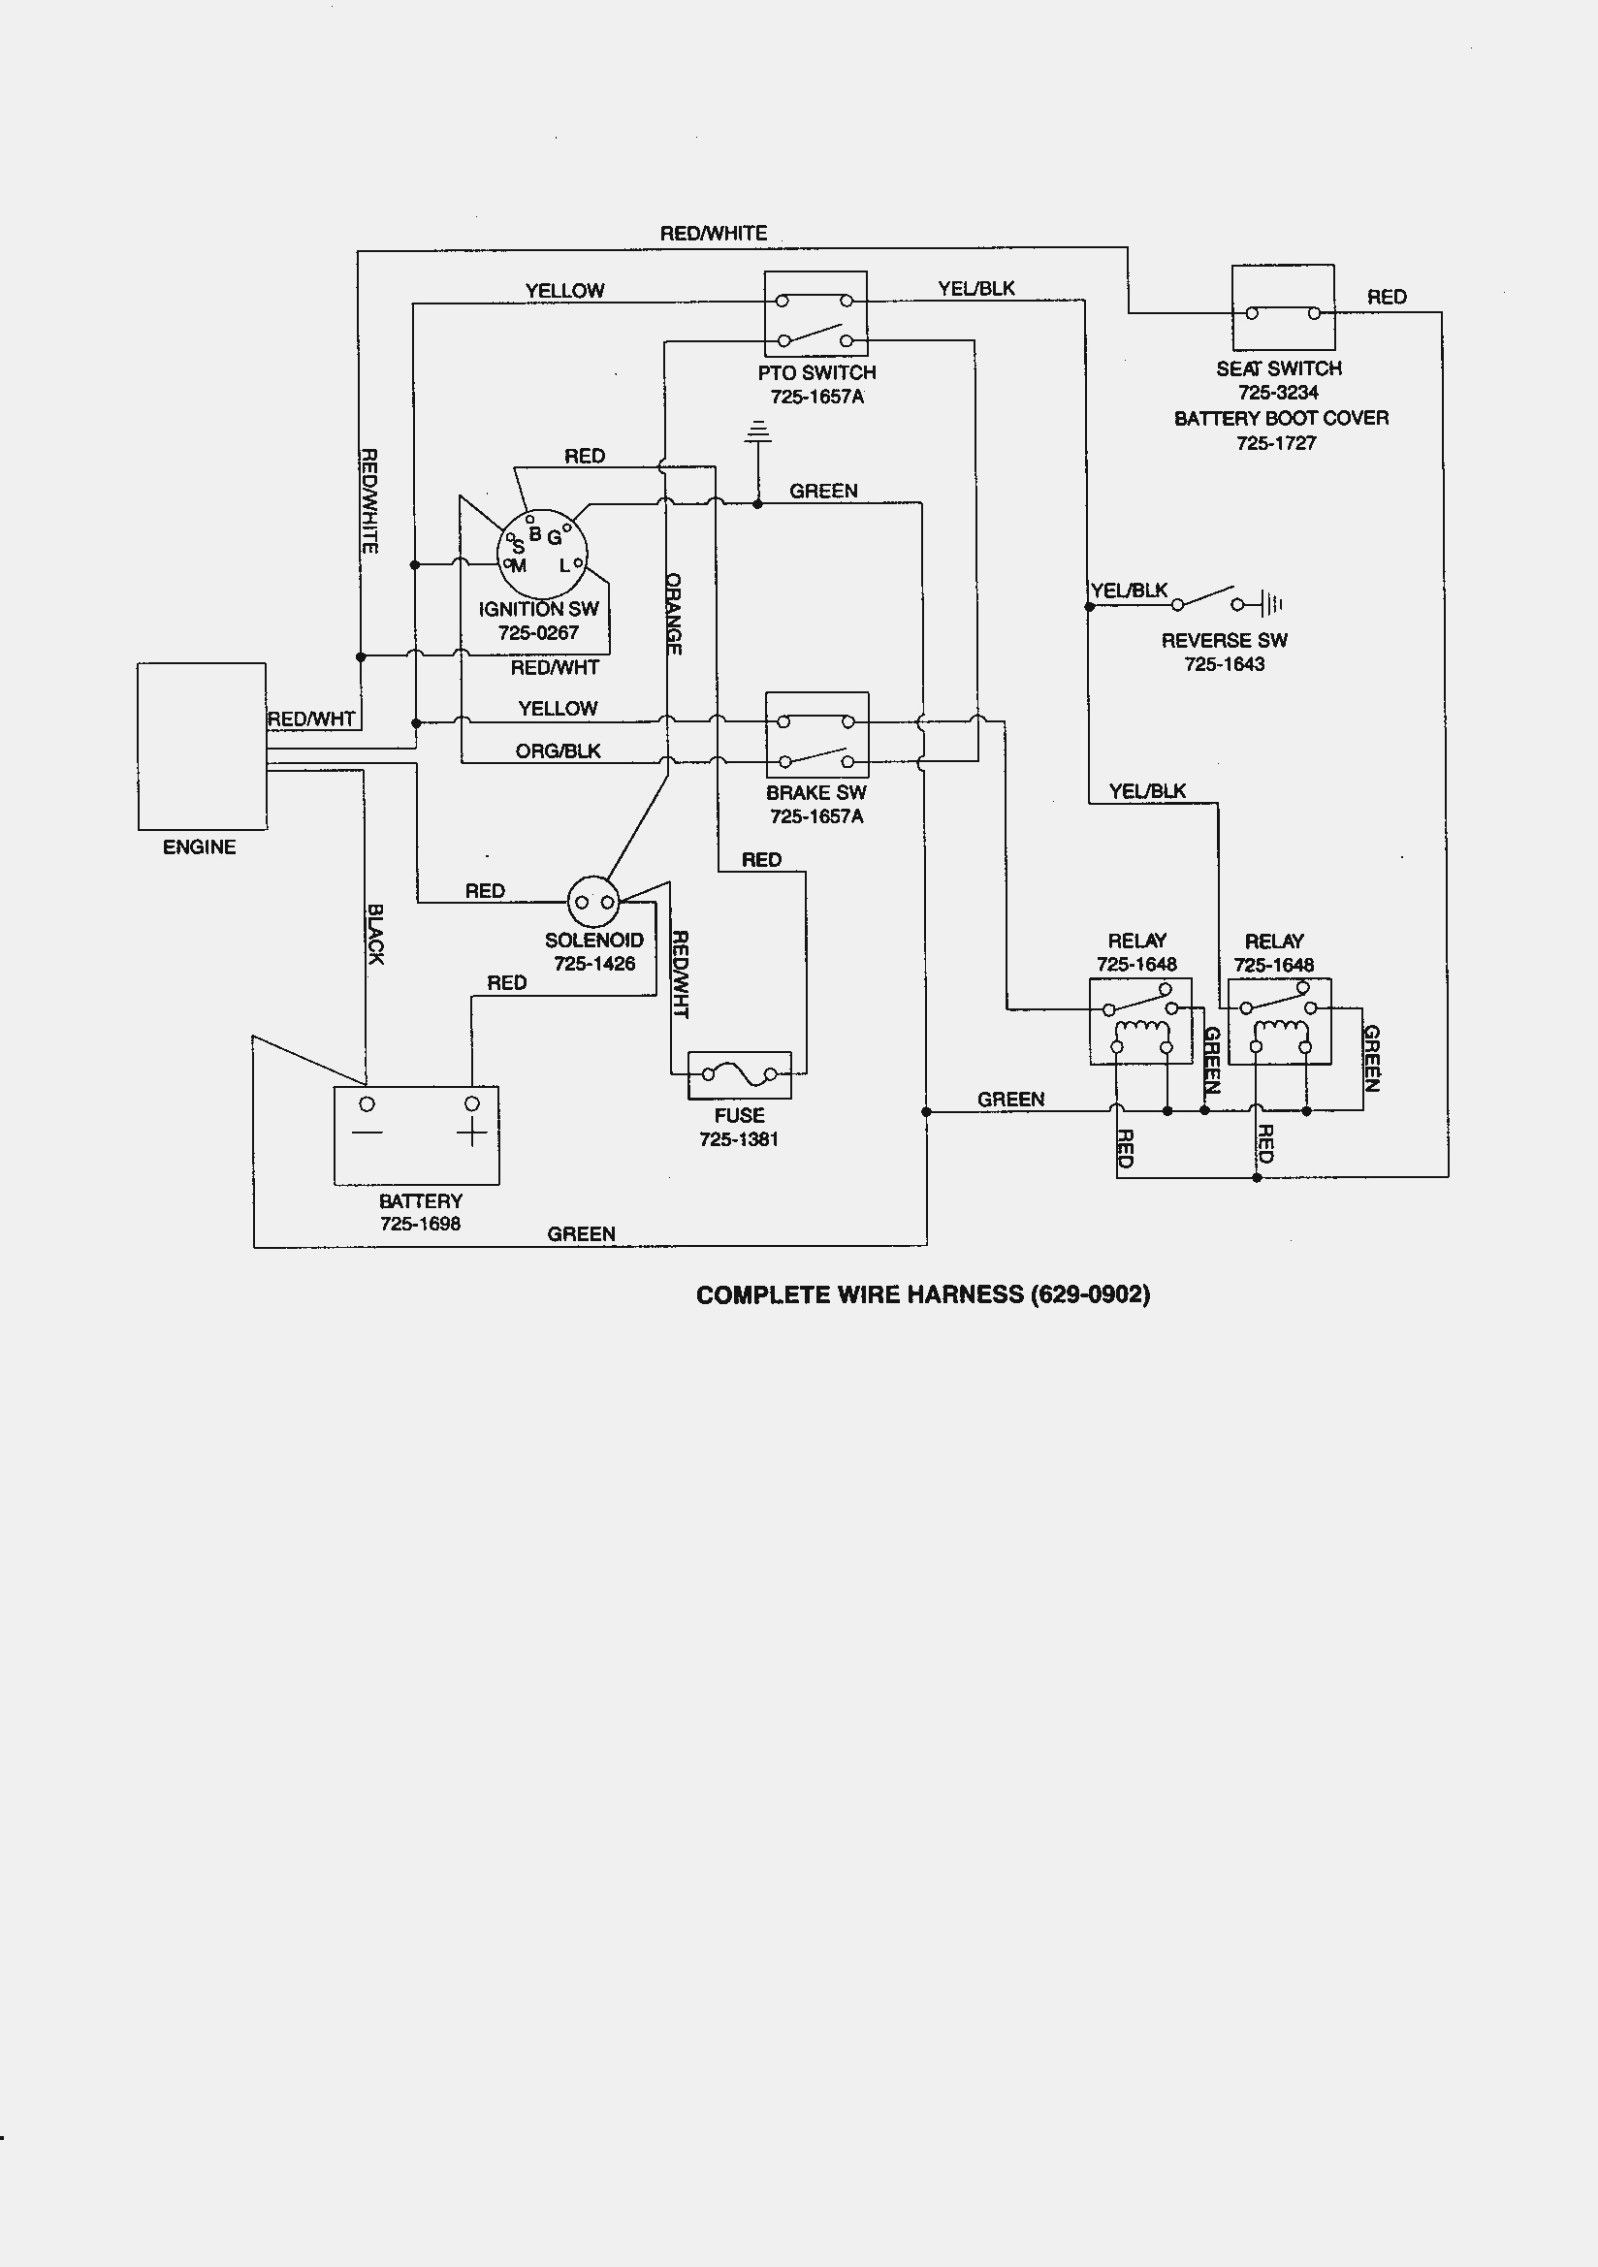 New Automotive Engine Wiring Diagram Diagram, Craftsman